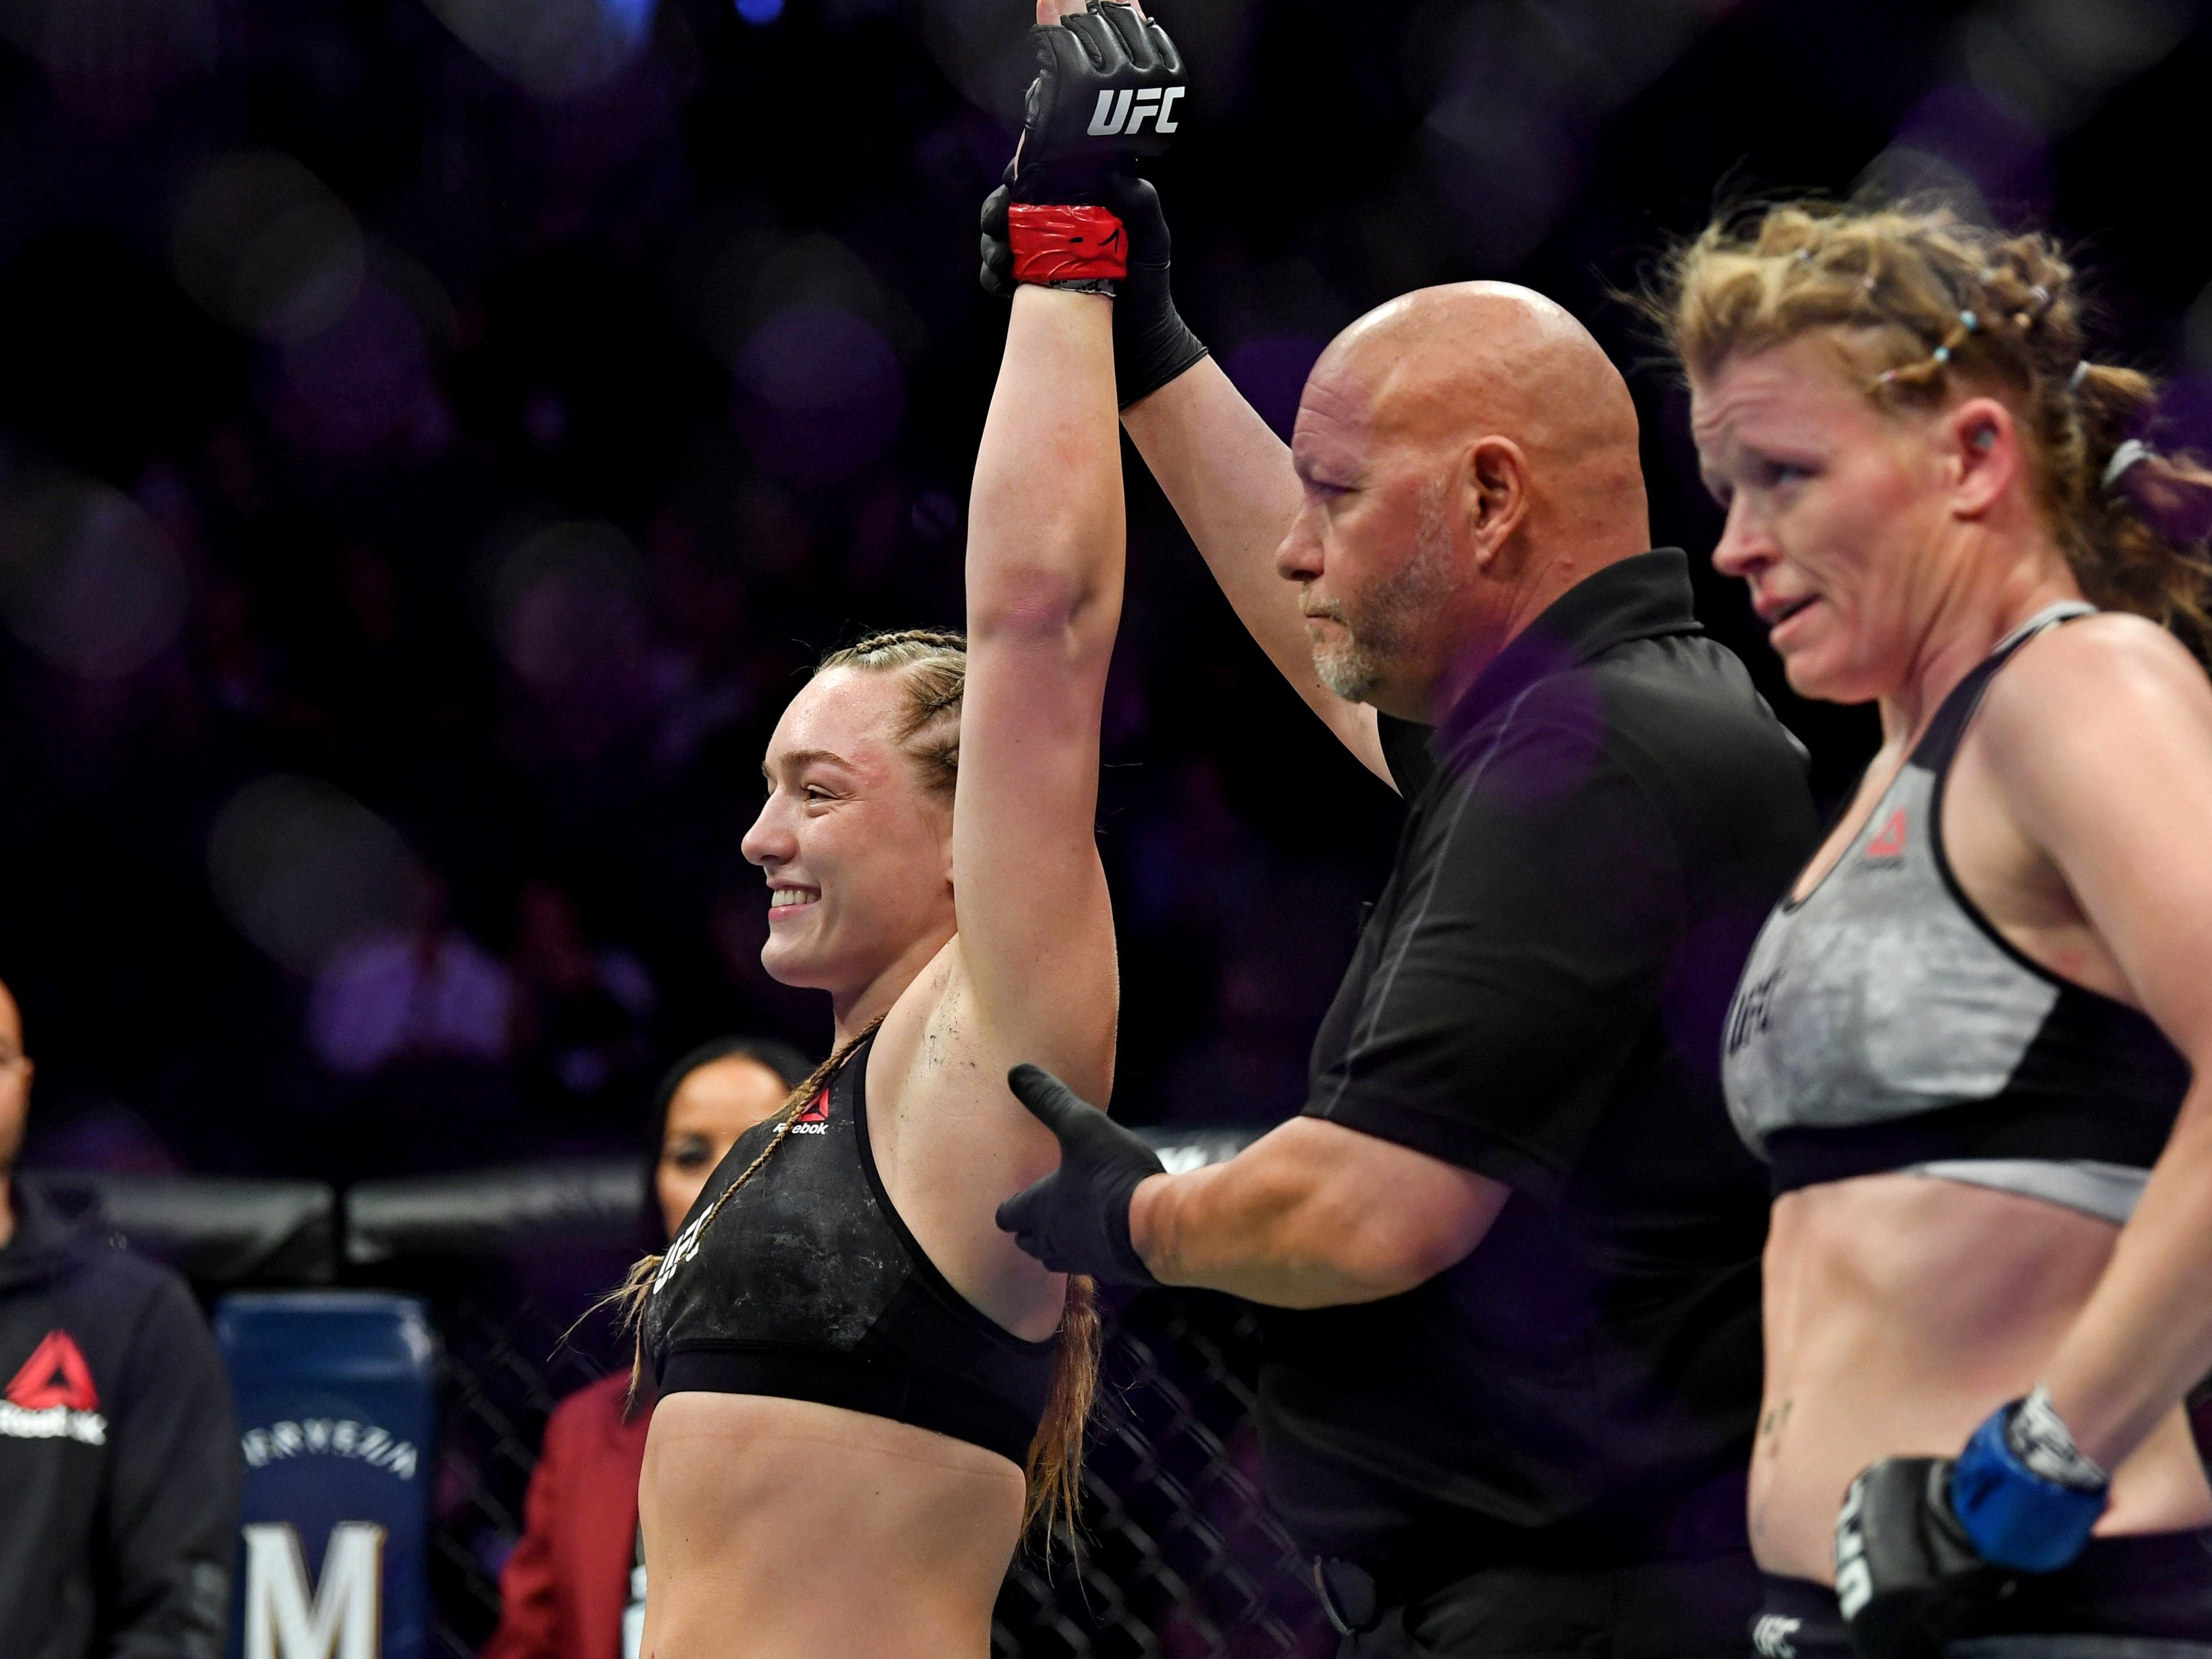 Aspen Ladd celebrates after beating Tonya Evinger with a first-round TKO.